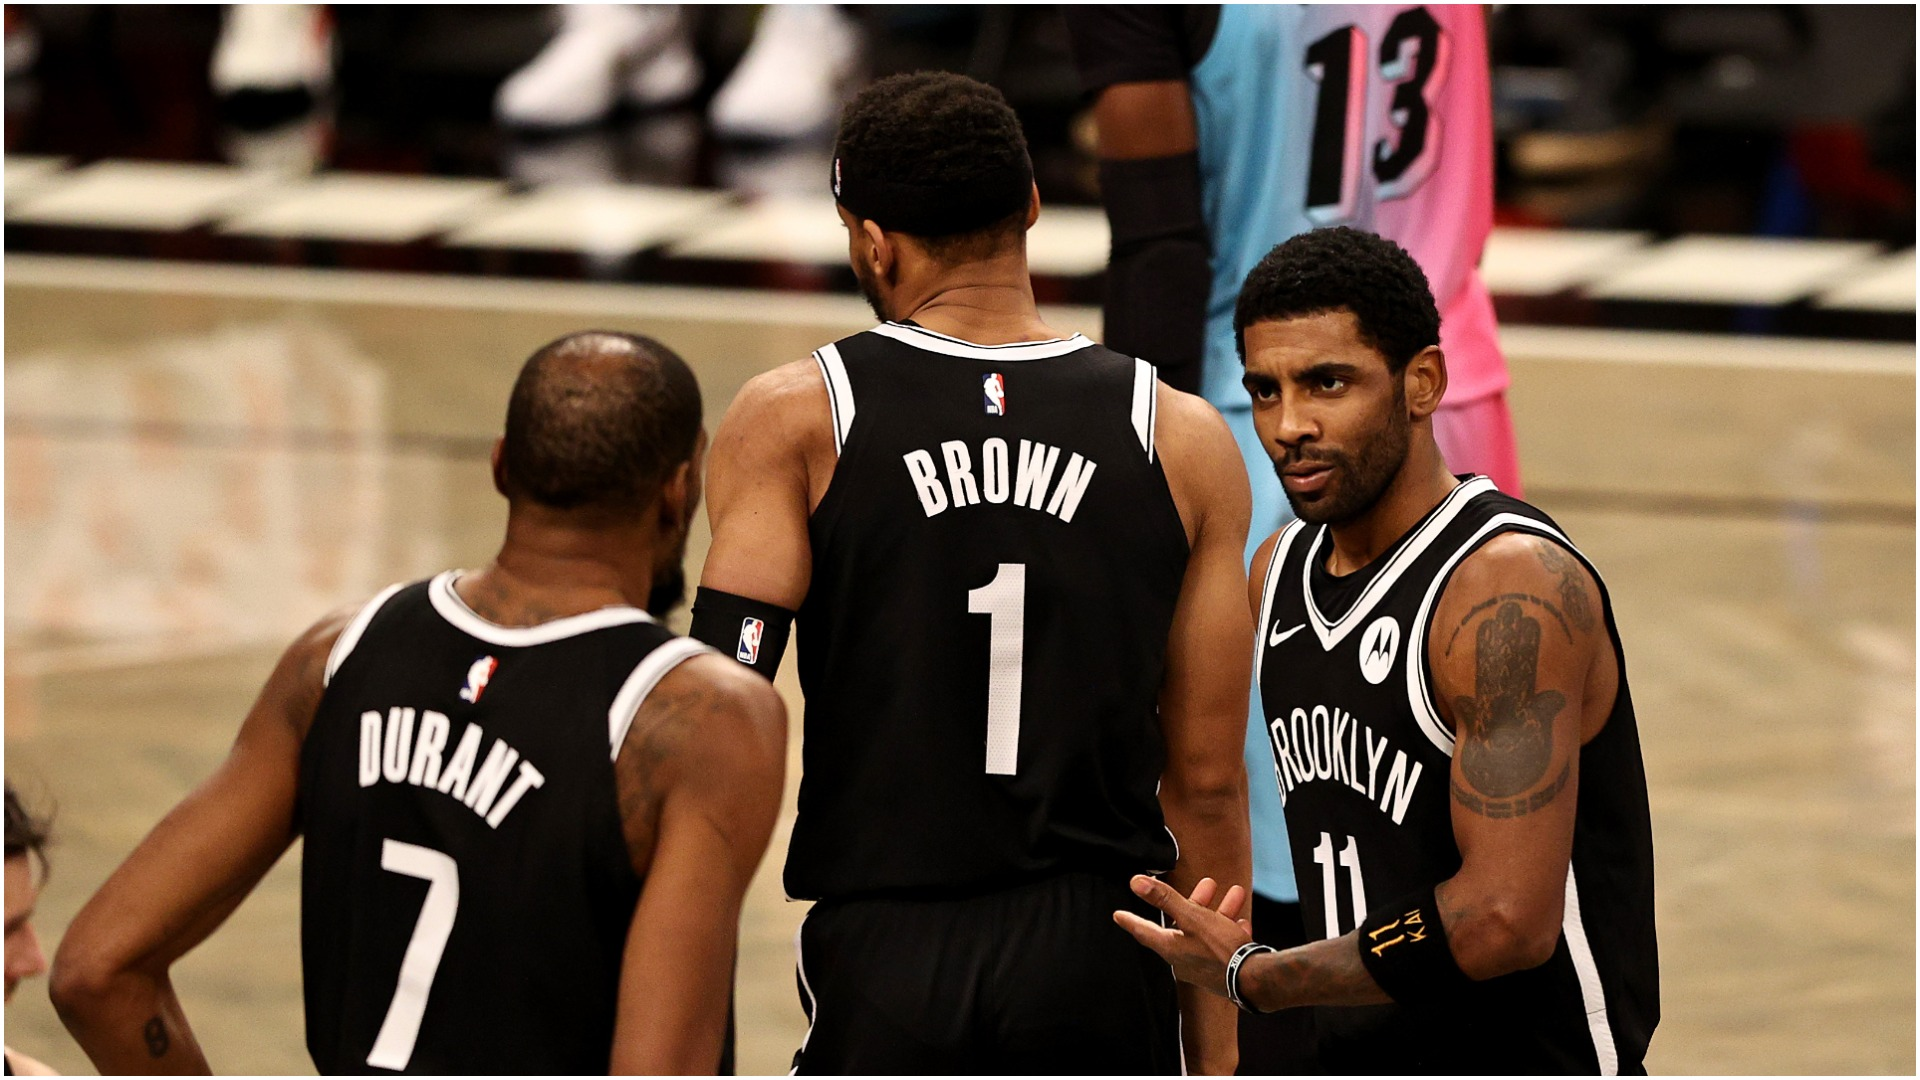 """Kyrie Irving declared """"it's winning time"""" after his fourth-quarter showing saw the Brooklyn Nets beat the Bam Adebayo-inspired Miami Heat."""